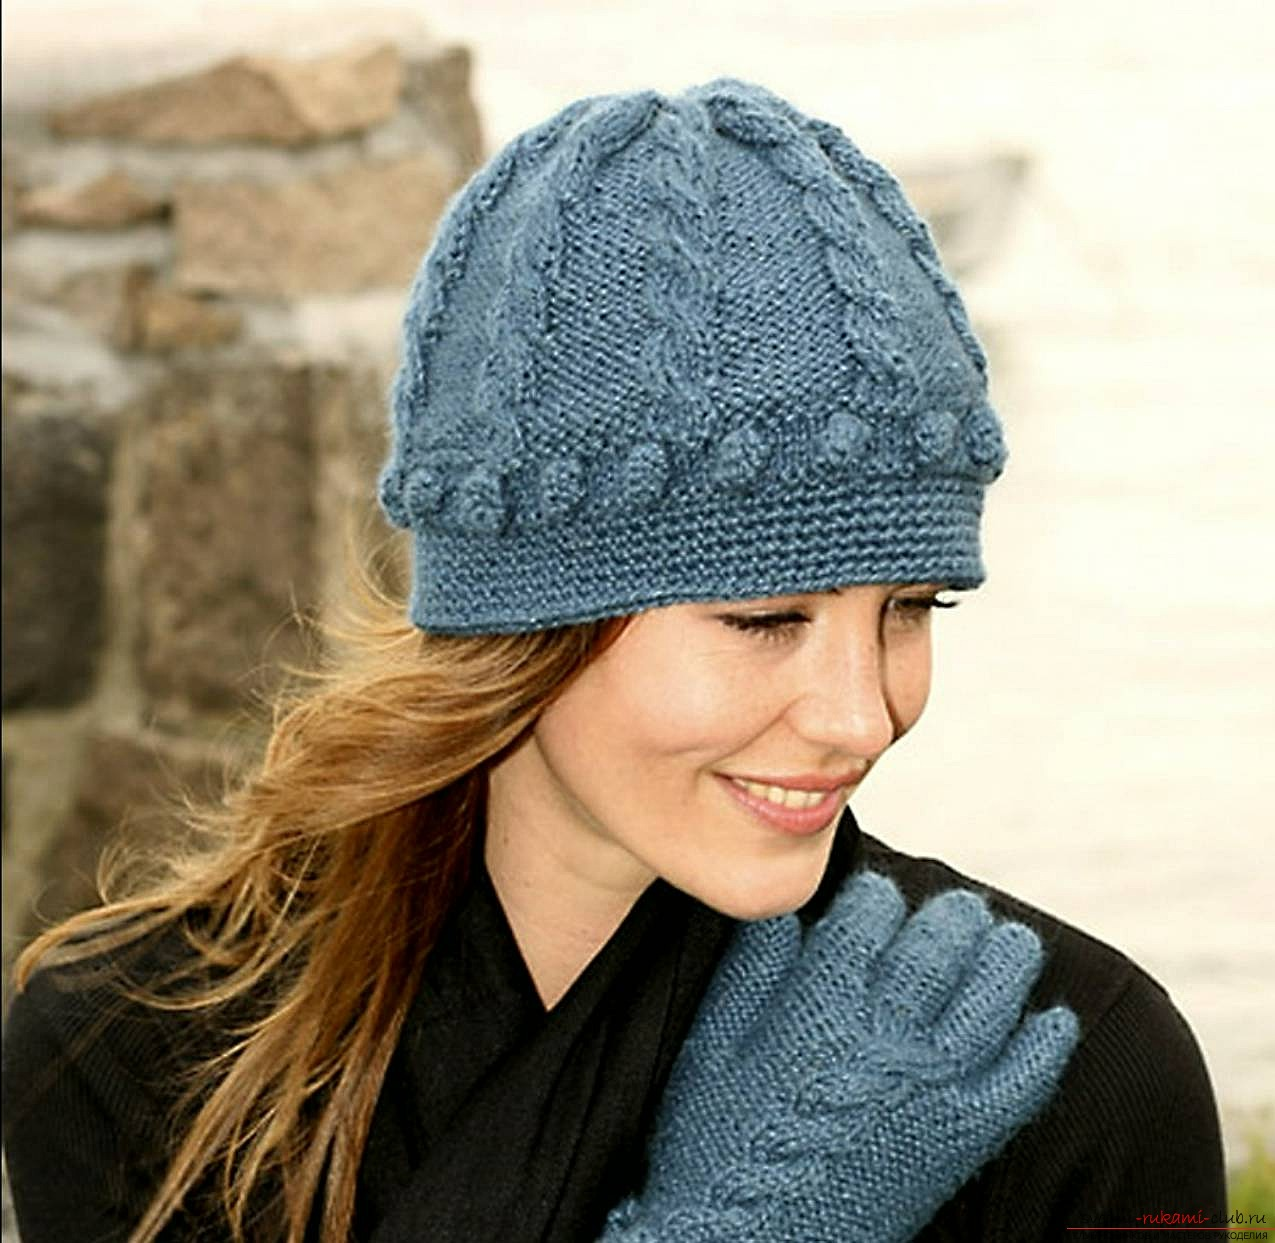 a knitted hat for women. Photo №4